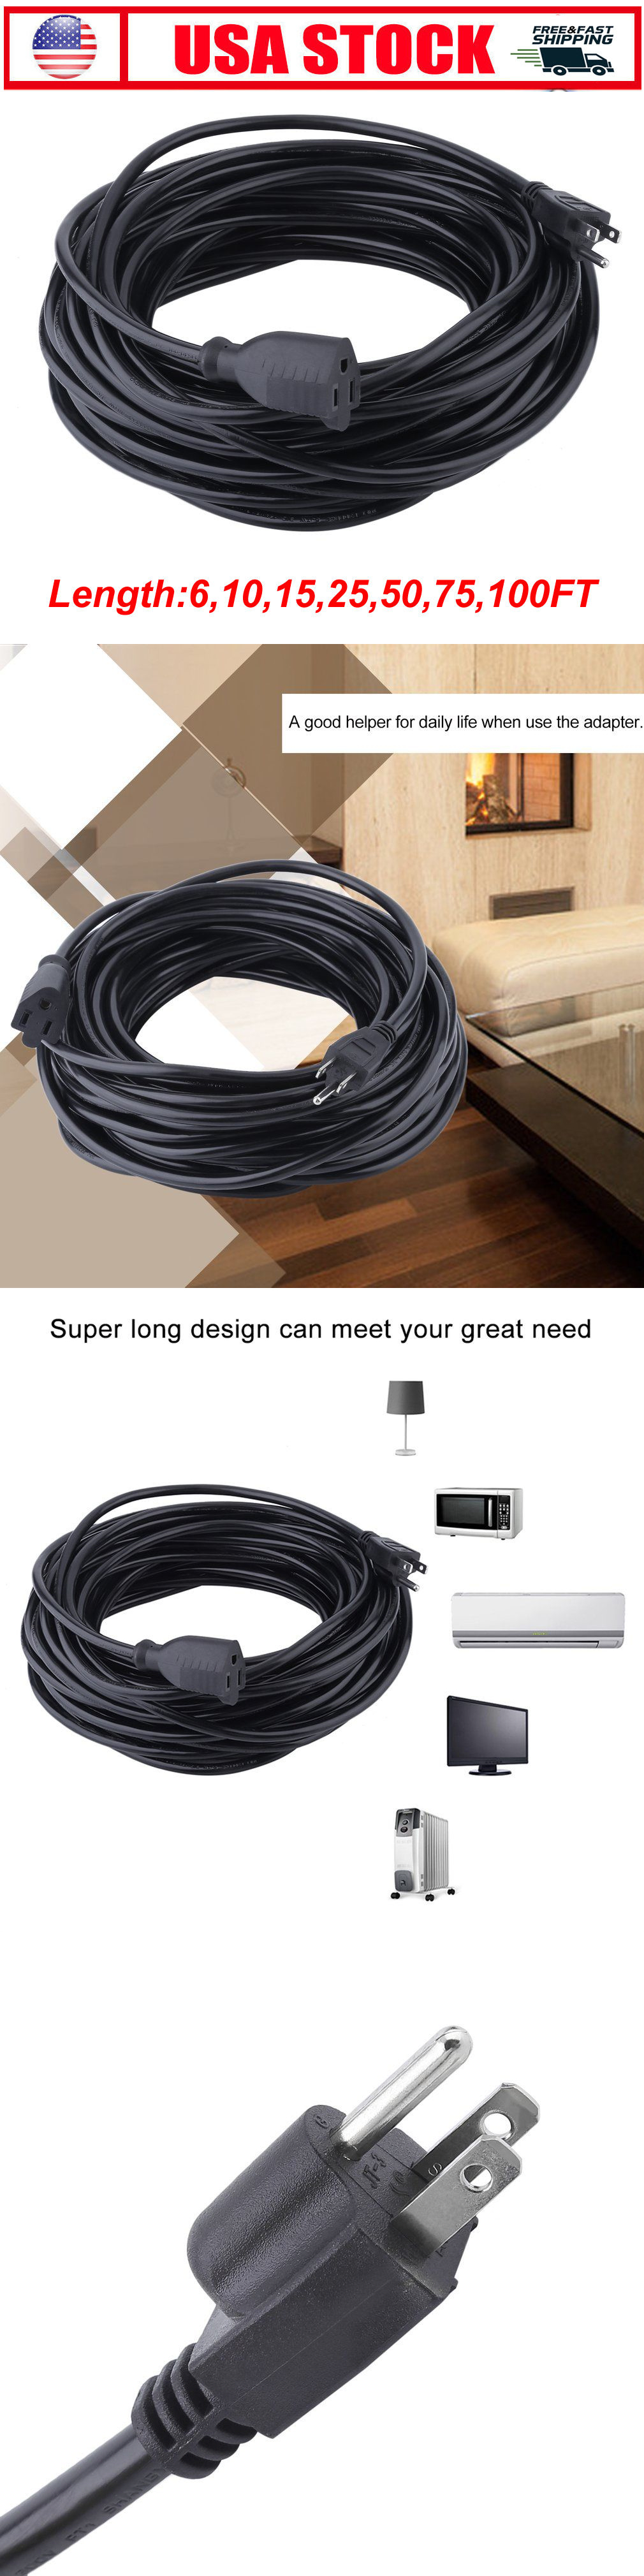 Extension Cords 75577: Premium Electric Cable Power Extension Cord 6 ...